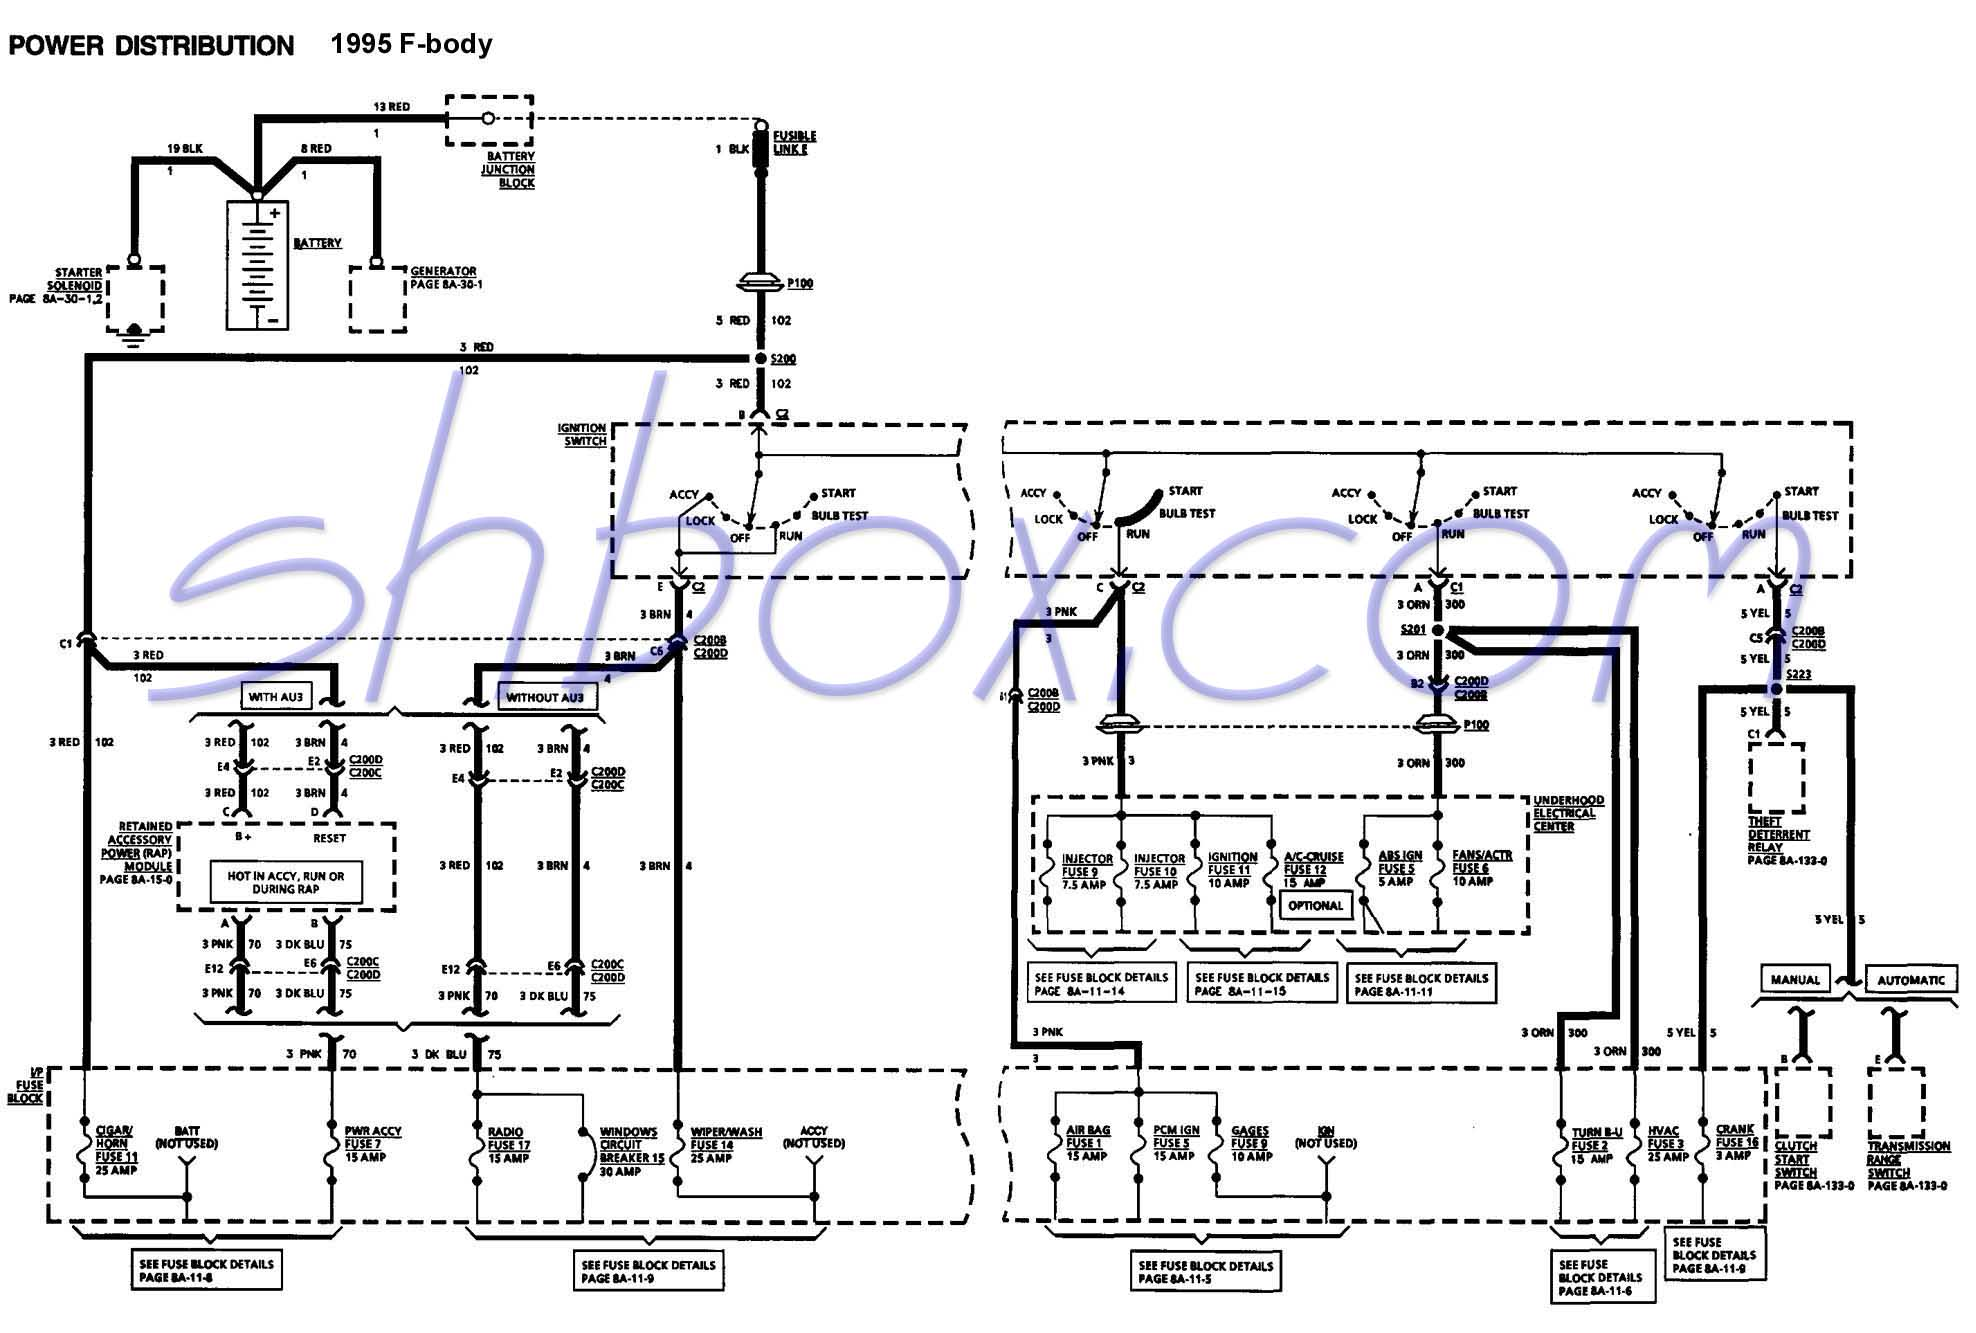 hight resolution of 2010 camaro steering column wiring diagram trusted wiring diagram rh 1 nl schoenheitsbrieftaube de 85 camaro